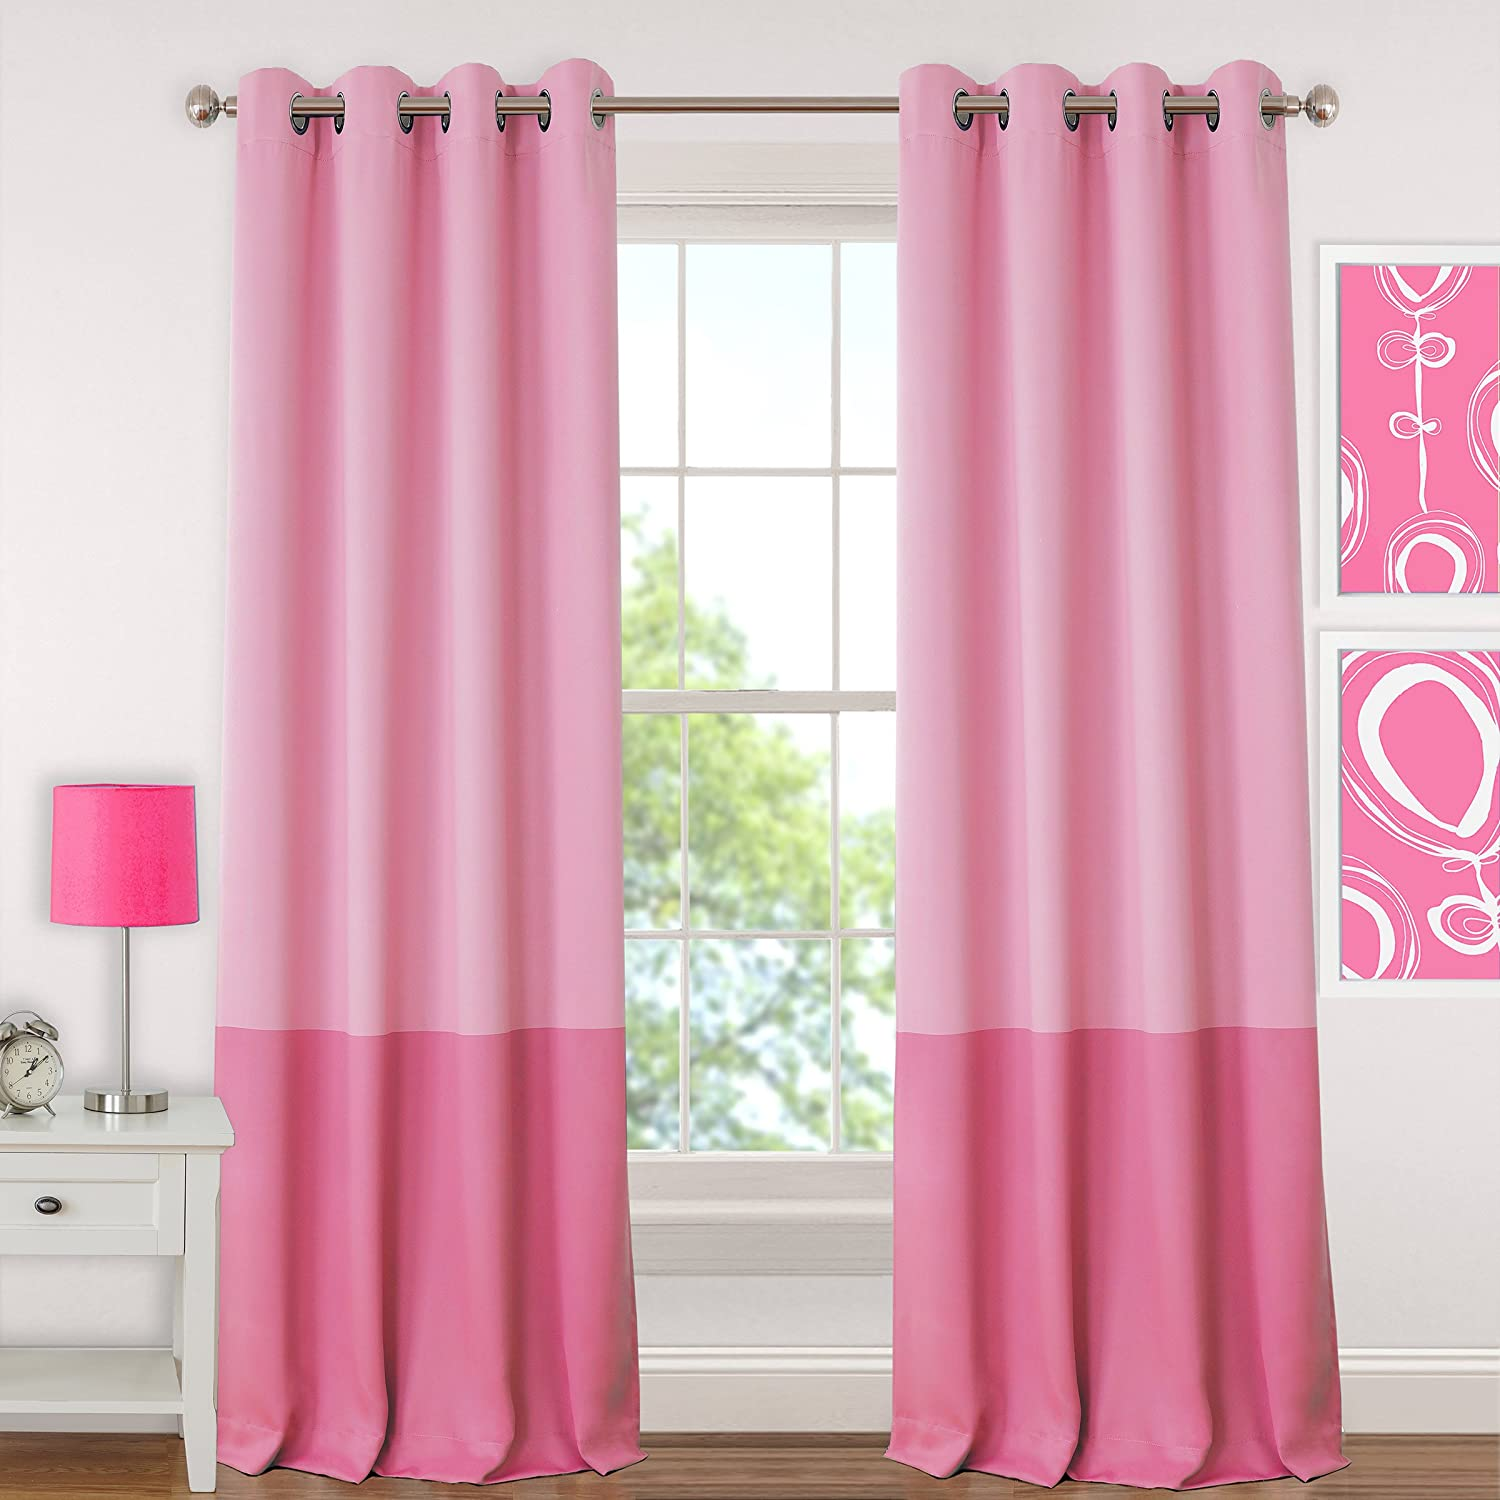 Pink 52 x 84 Elrene Home Fashions 026865901061 Juvenile Teen or Tween Blackout Room Darkening Grommet Window Curtain Drape Panel 52 x 84